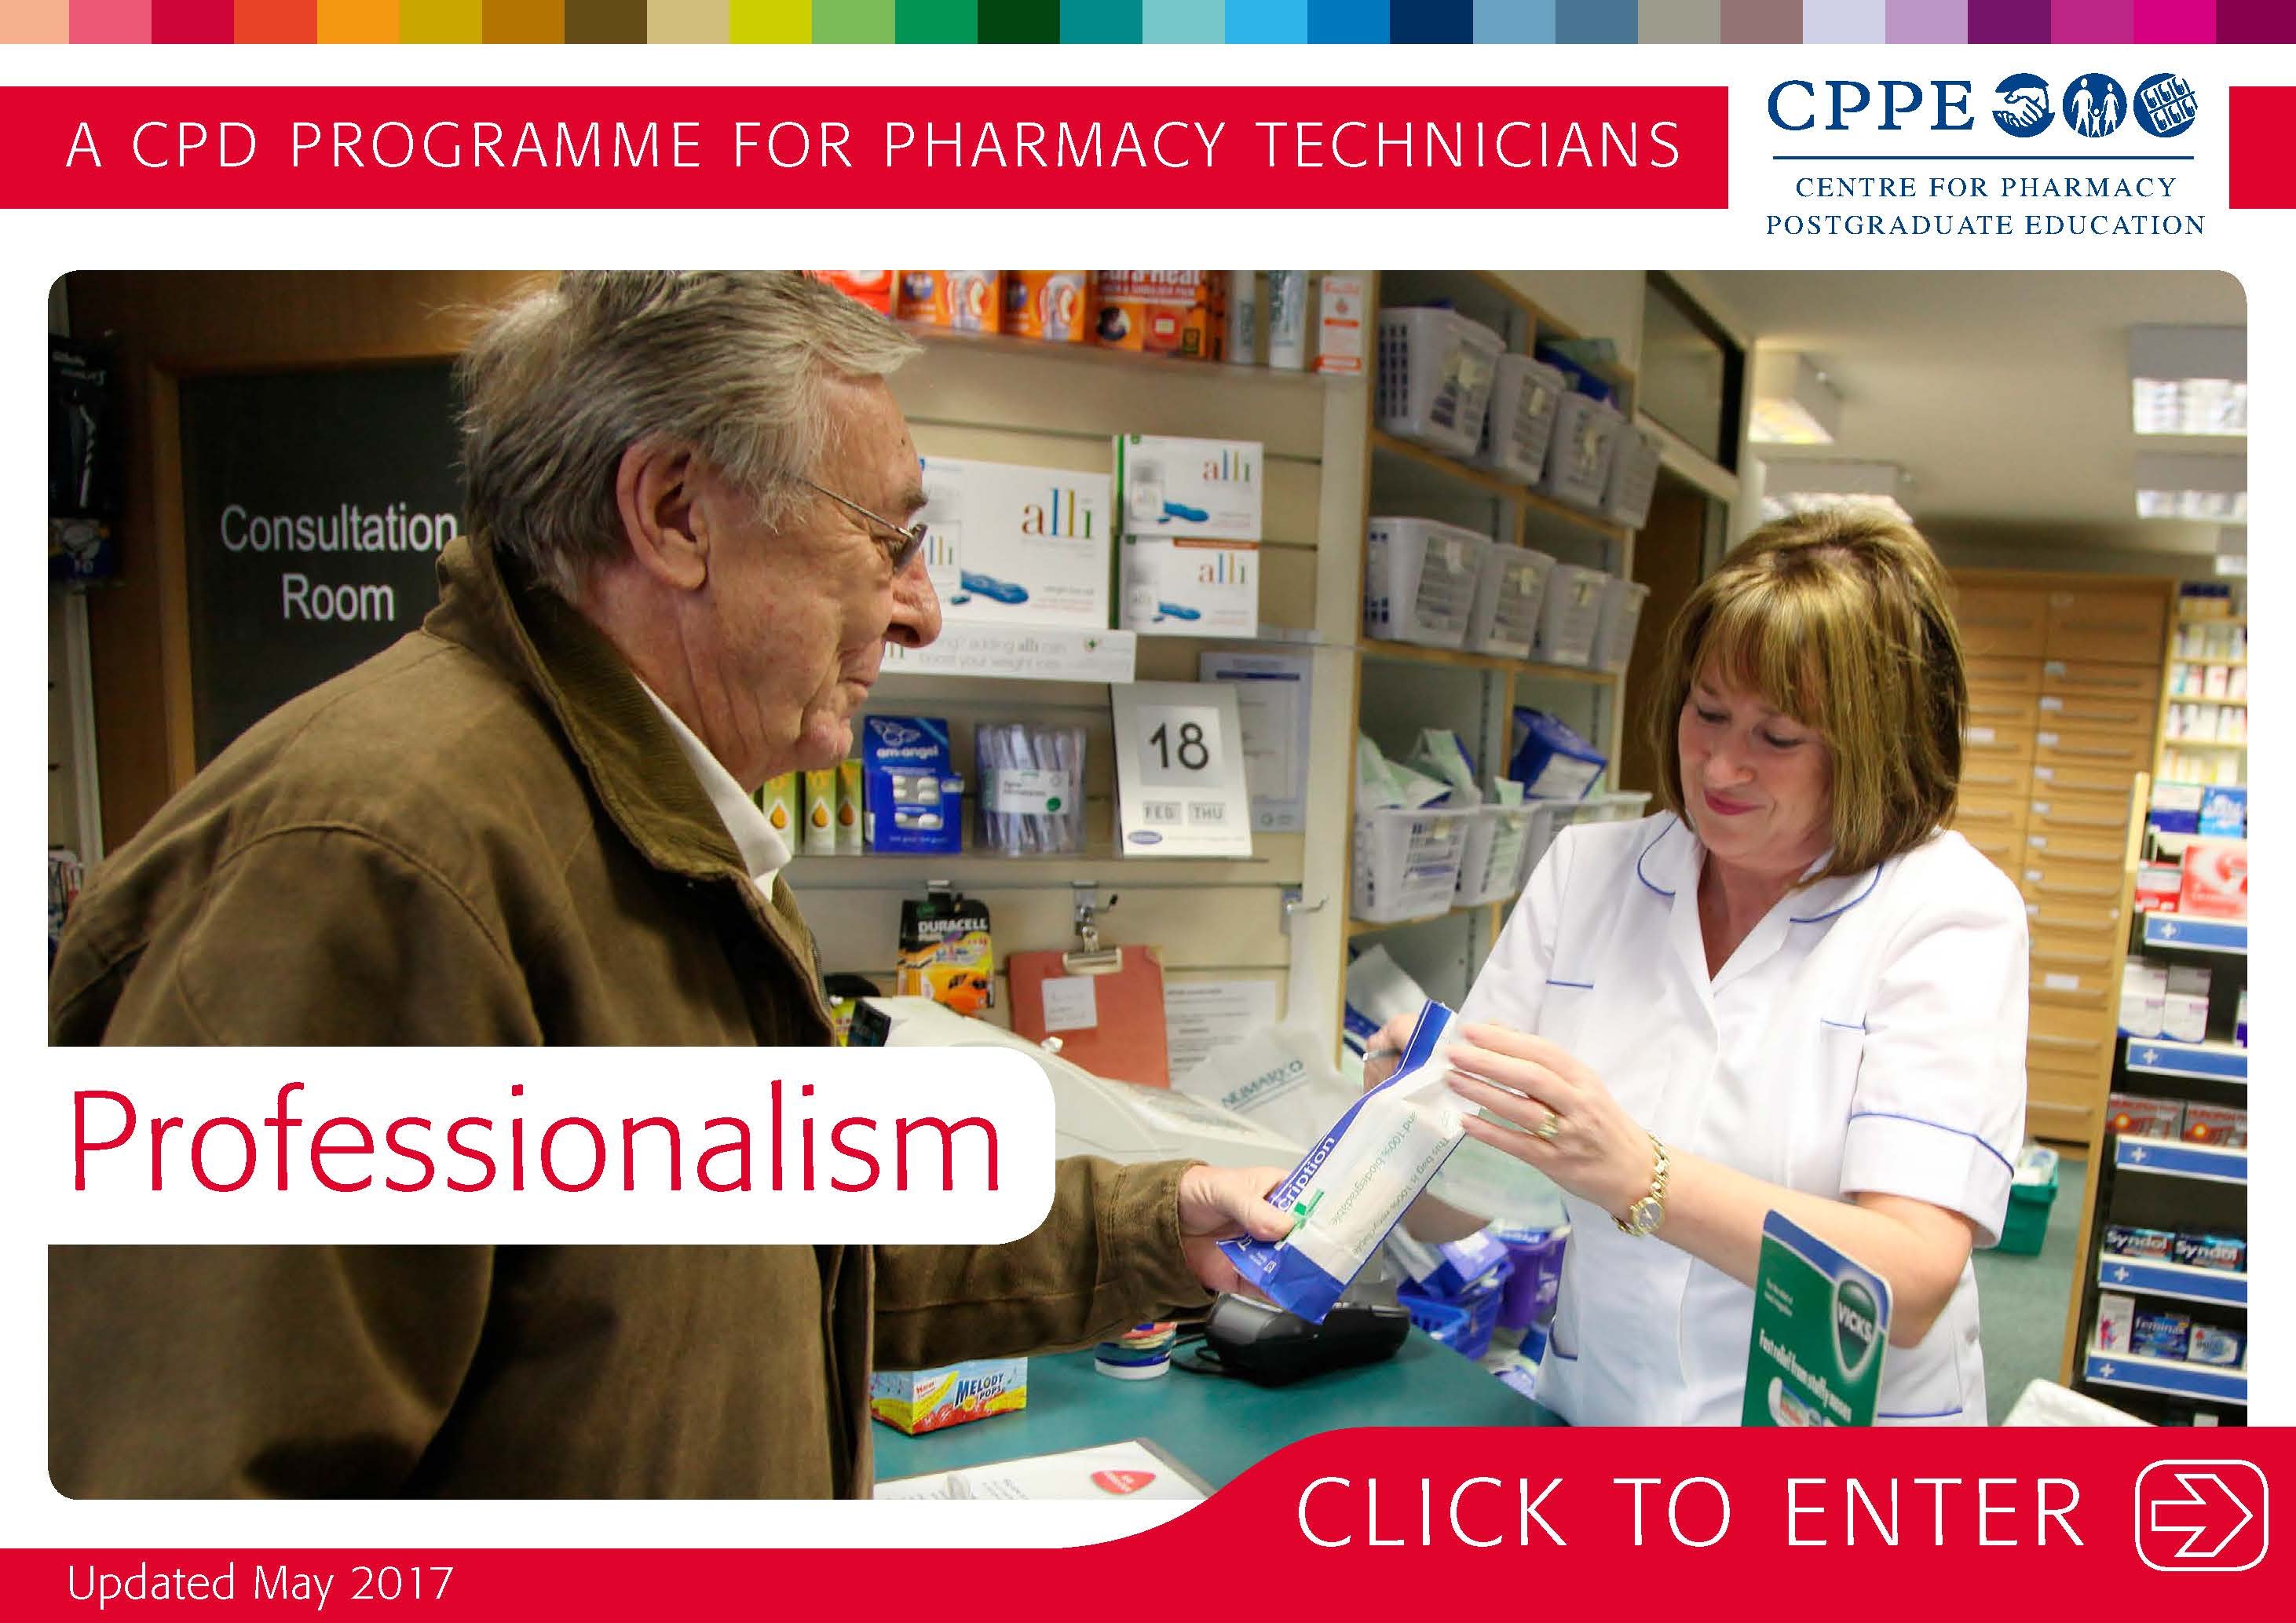 professionalism a cpd programme for pharmacy technicians cppe view programme taster